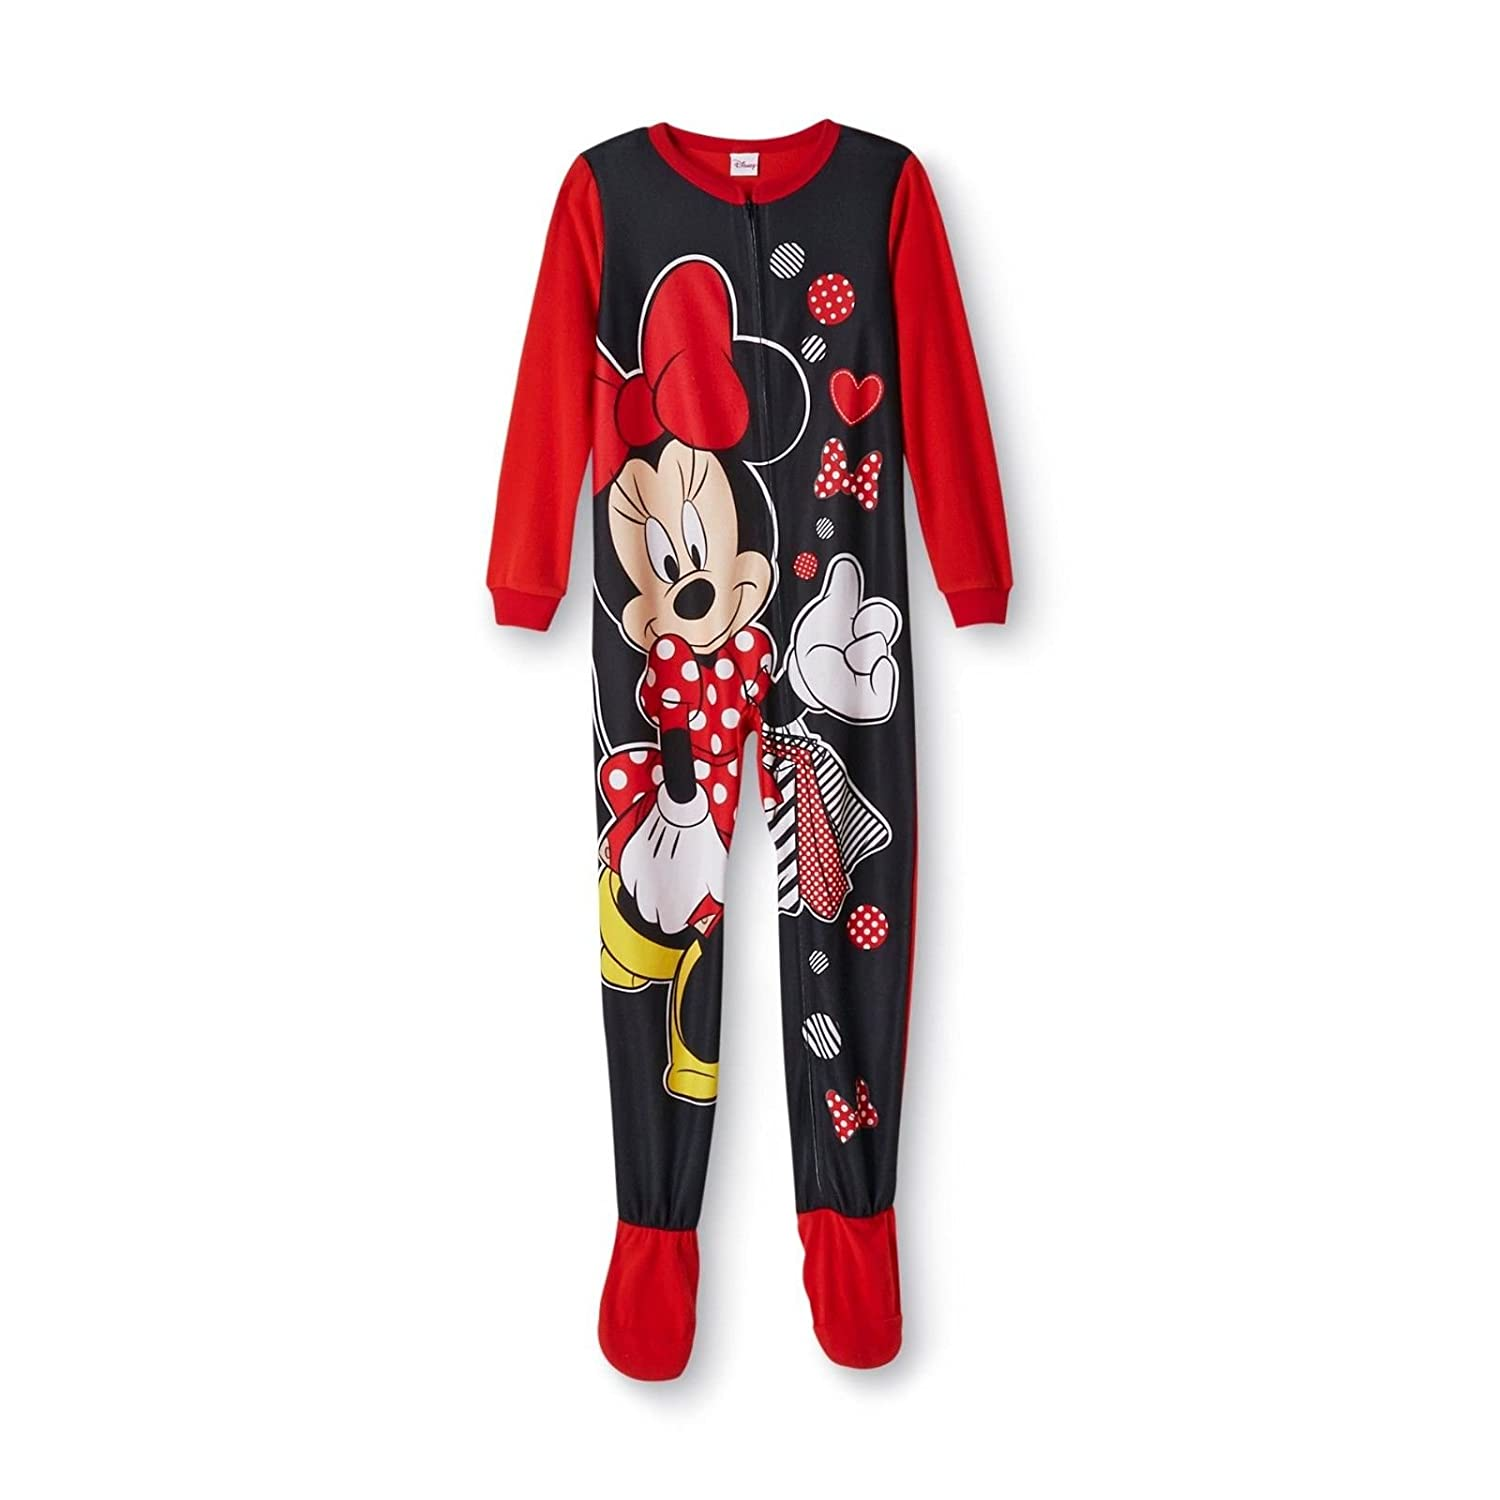 Disney Minnie Mouse Footed Blanket Sleeper Pajama Girl Size XS 4//5